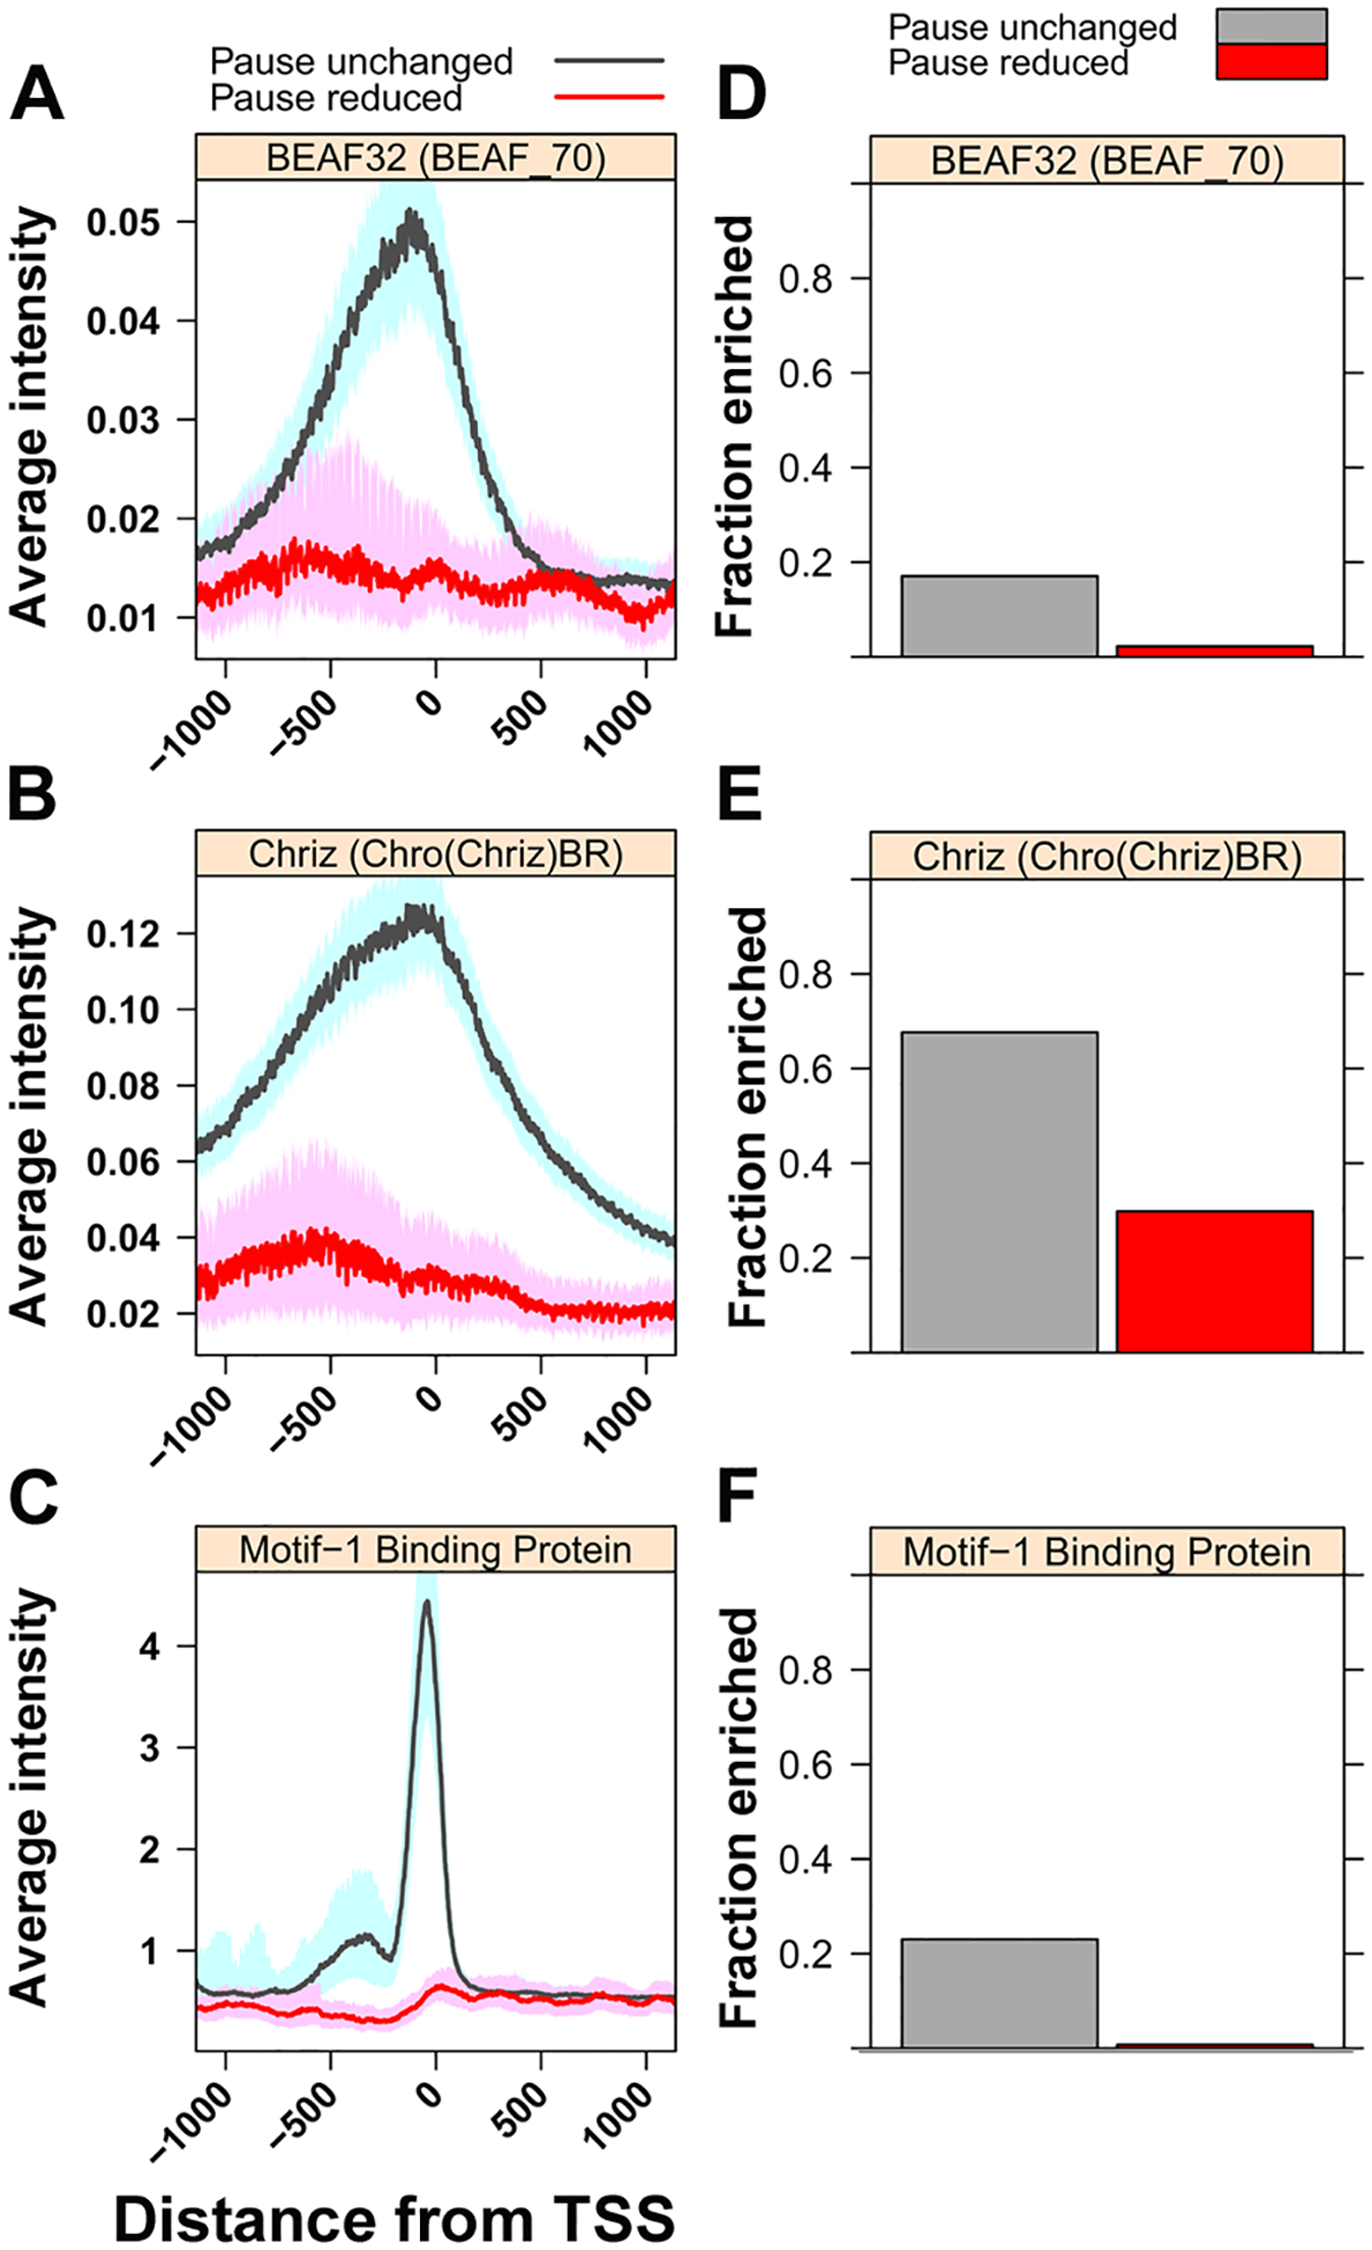 Levels of insulator-associated factors and Motif-1-binding protein are highest on unaffected genes.